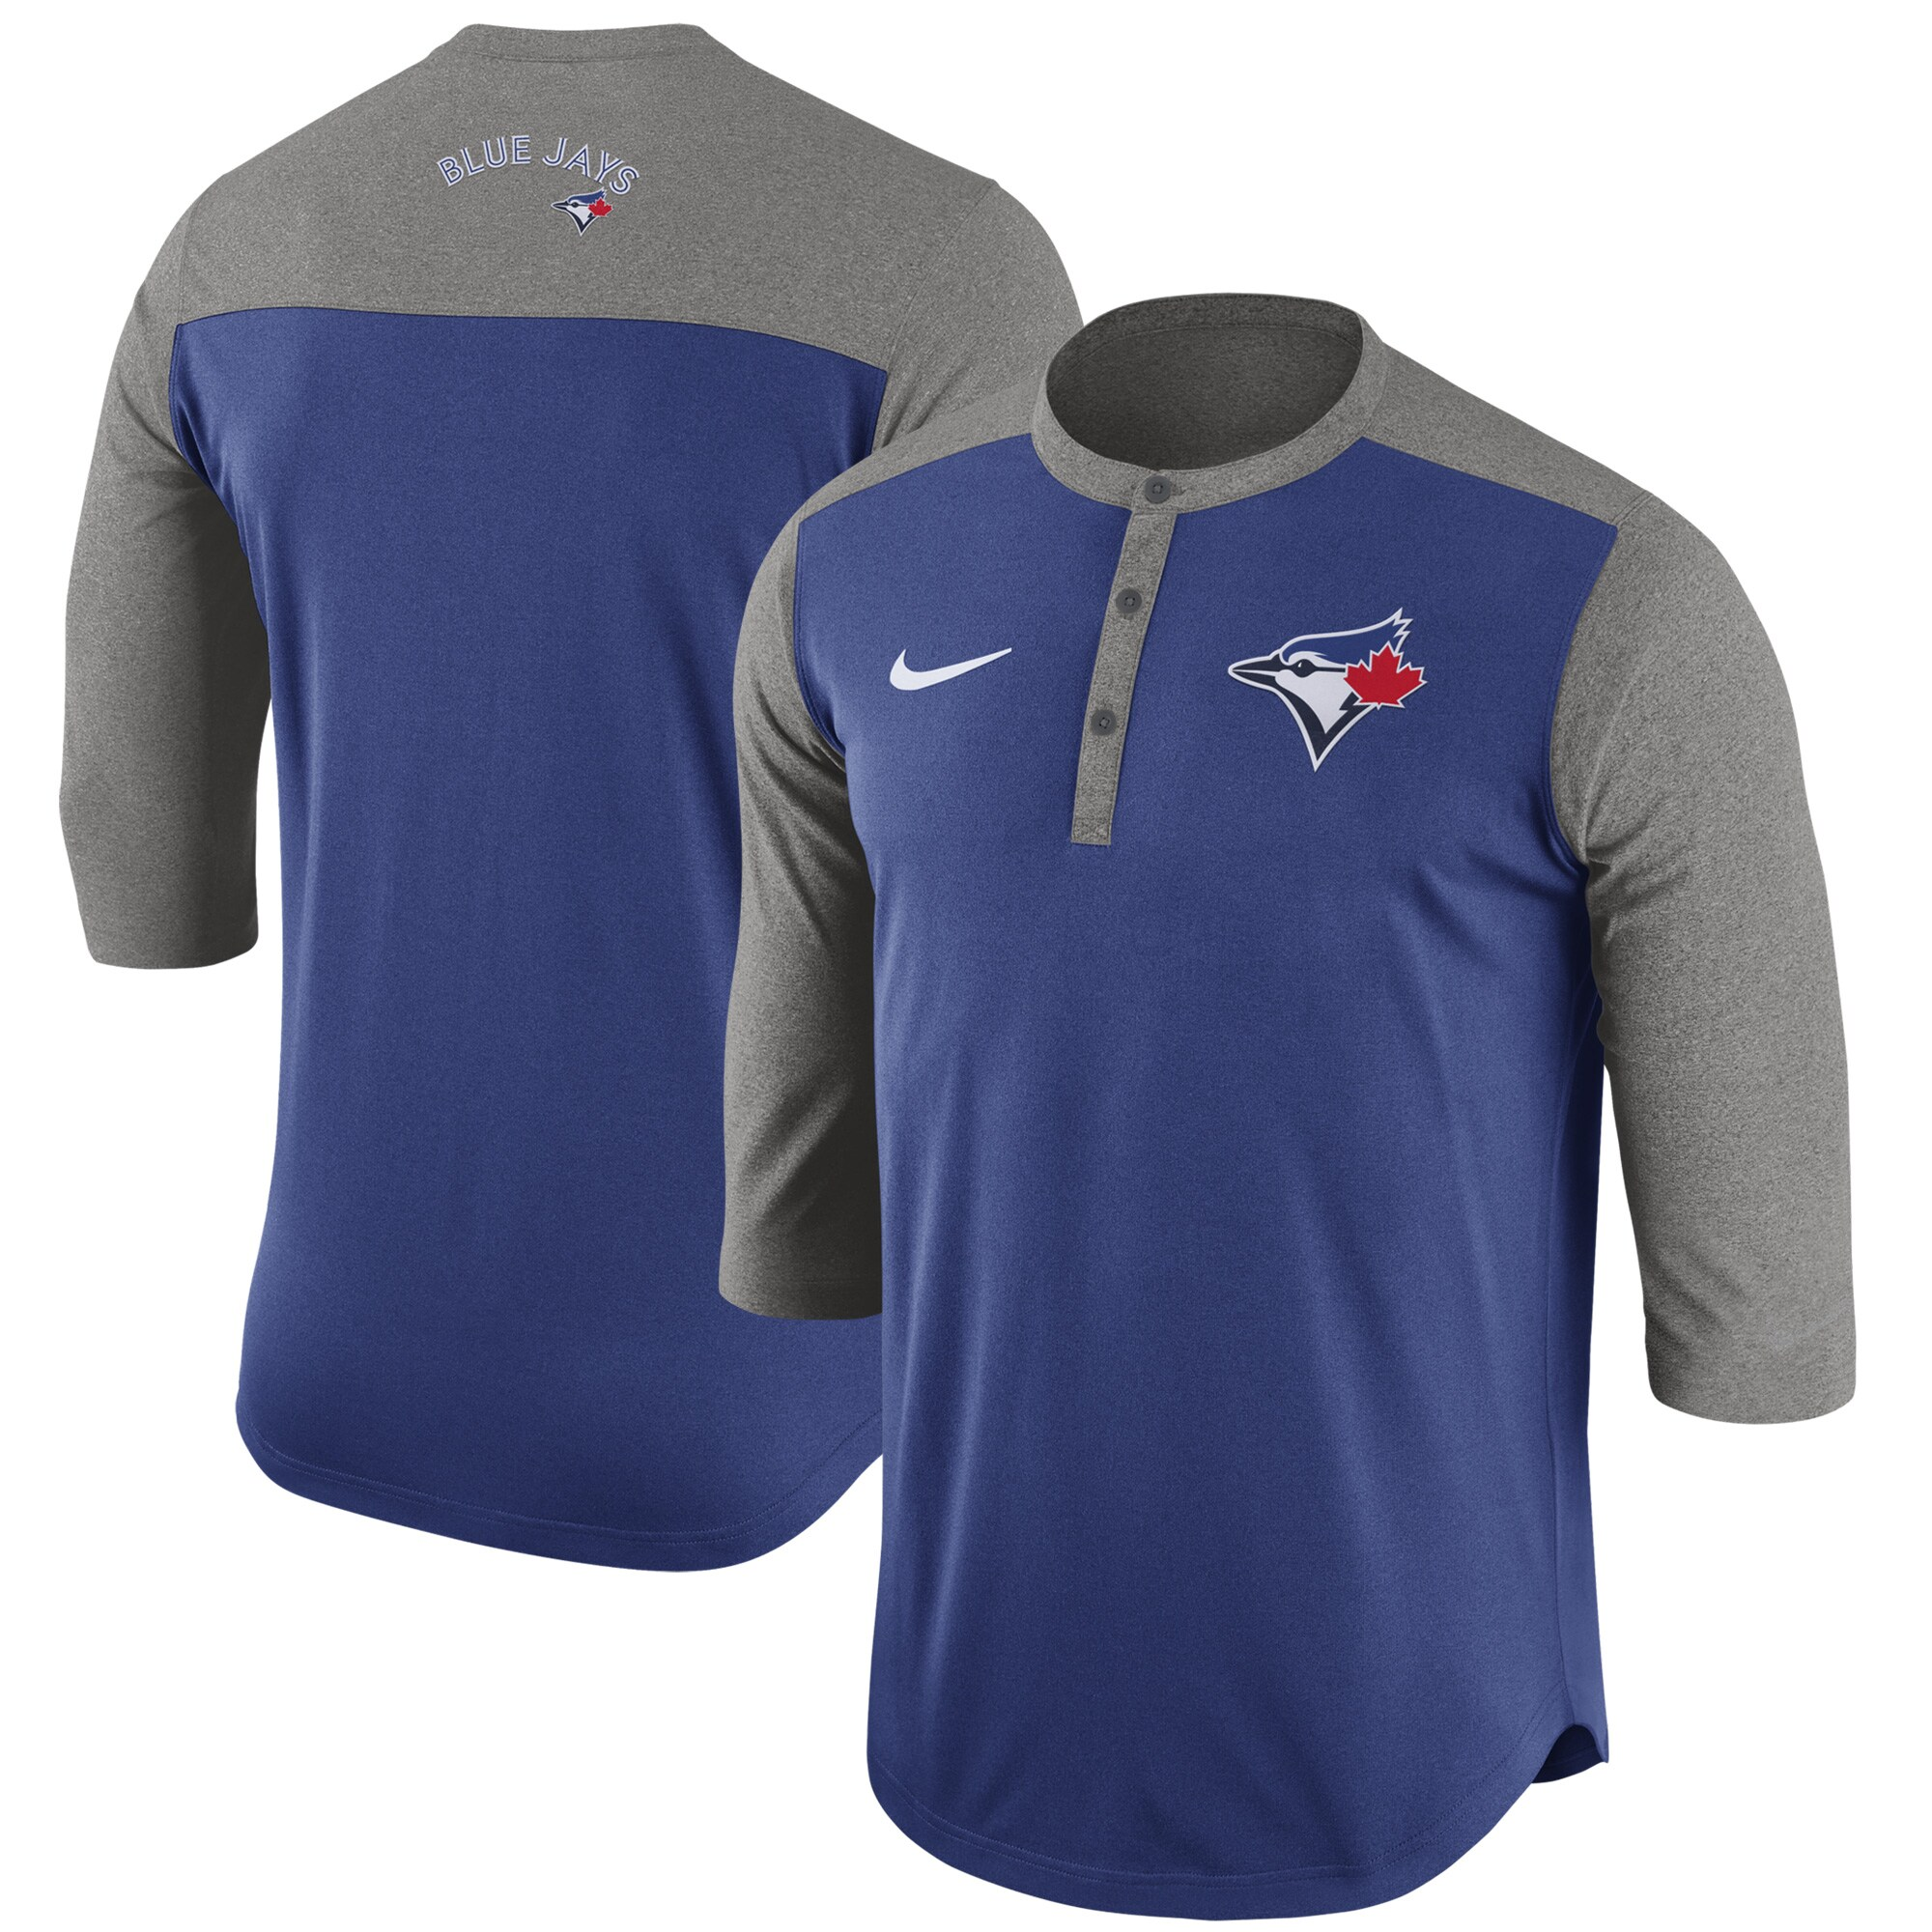 Toronto Blue Jays Nike Dry Henley 3/4-Sleeve T-Shirt - Royal